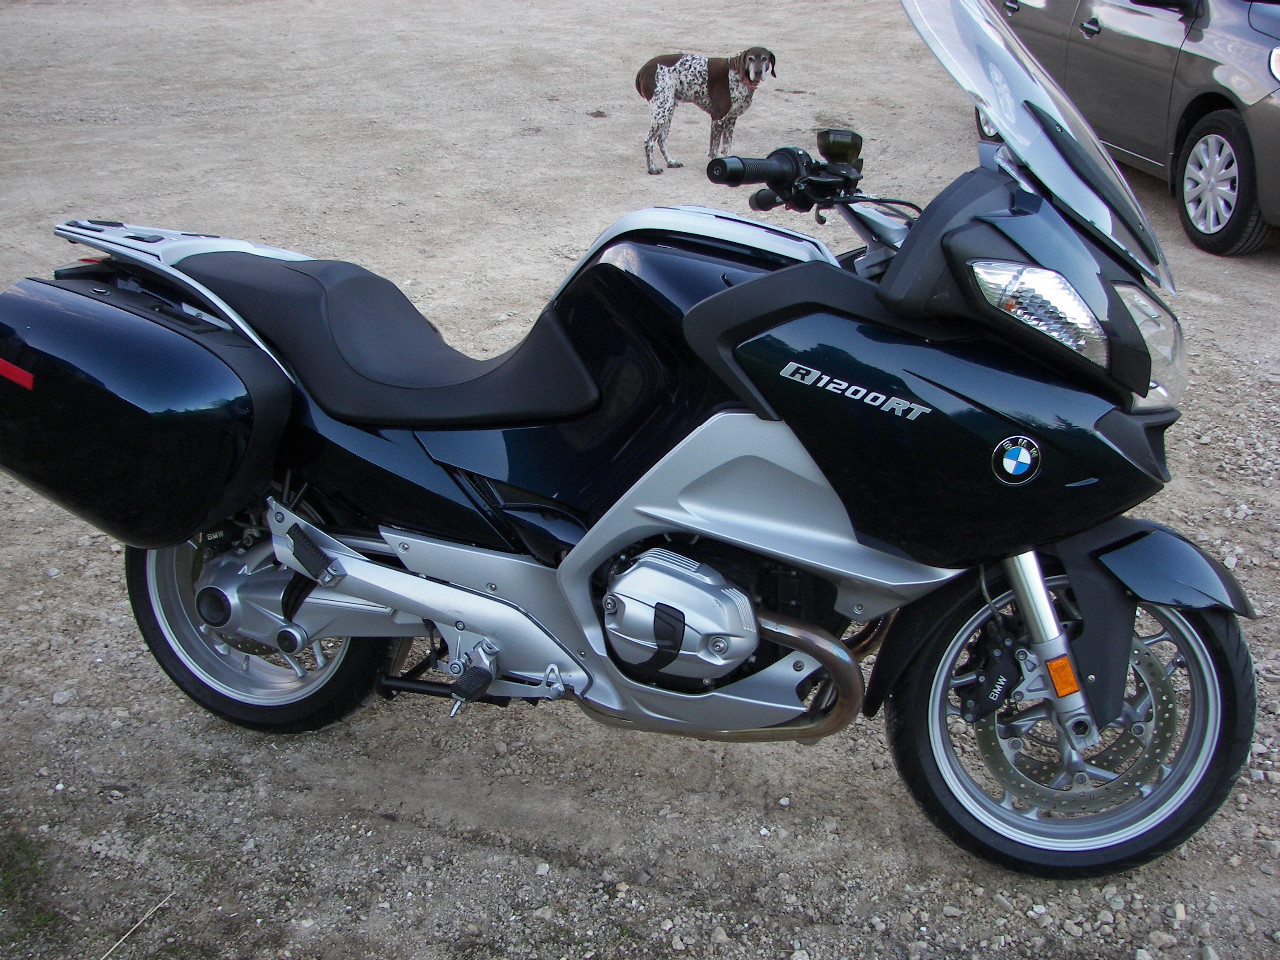 2013 BMW R 1200 RT Touring Motorcycle From MAZOMANIE, WI ...